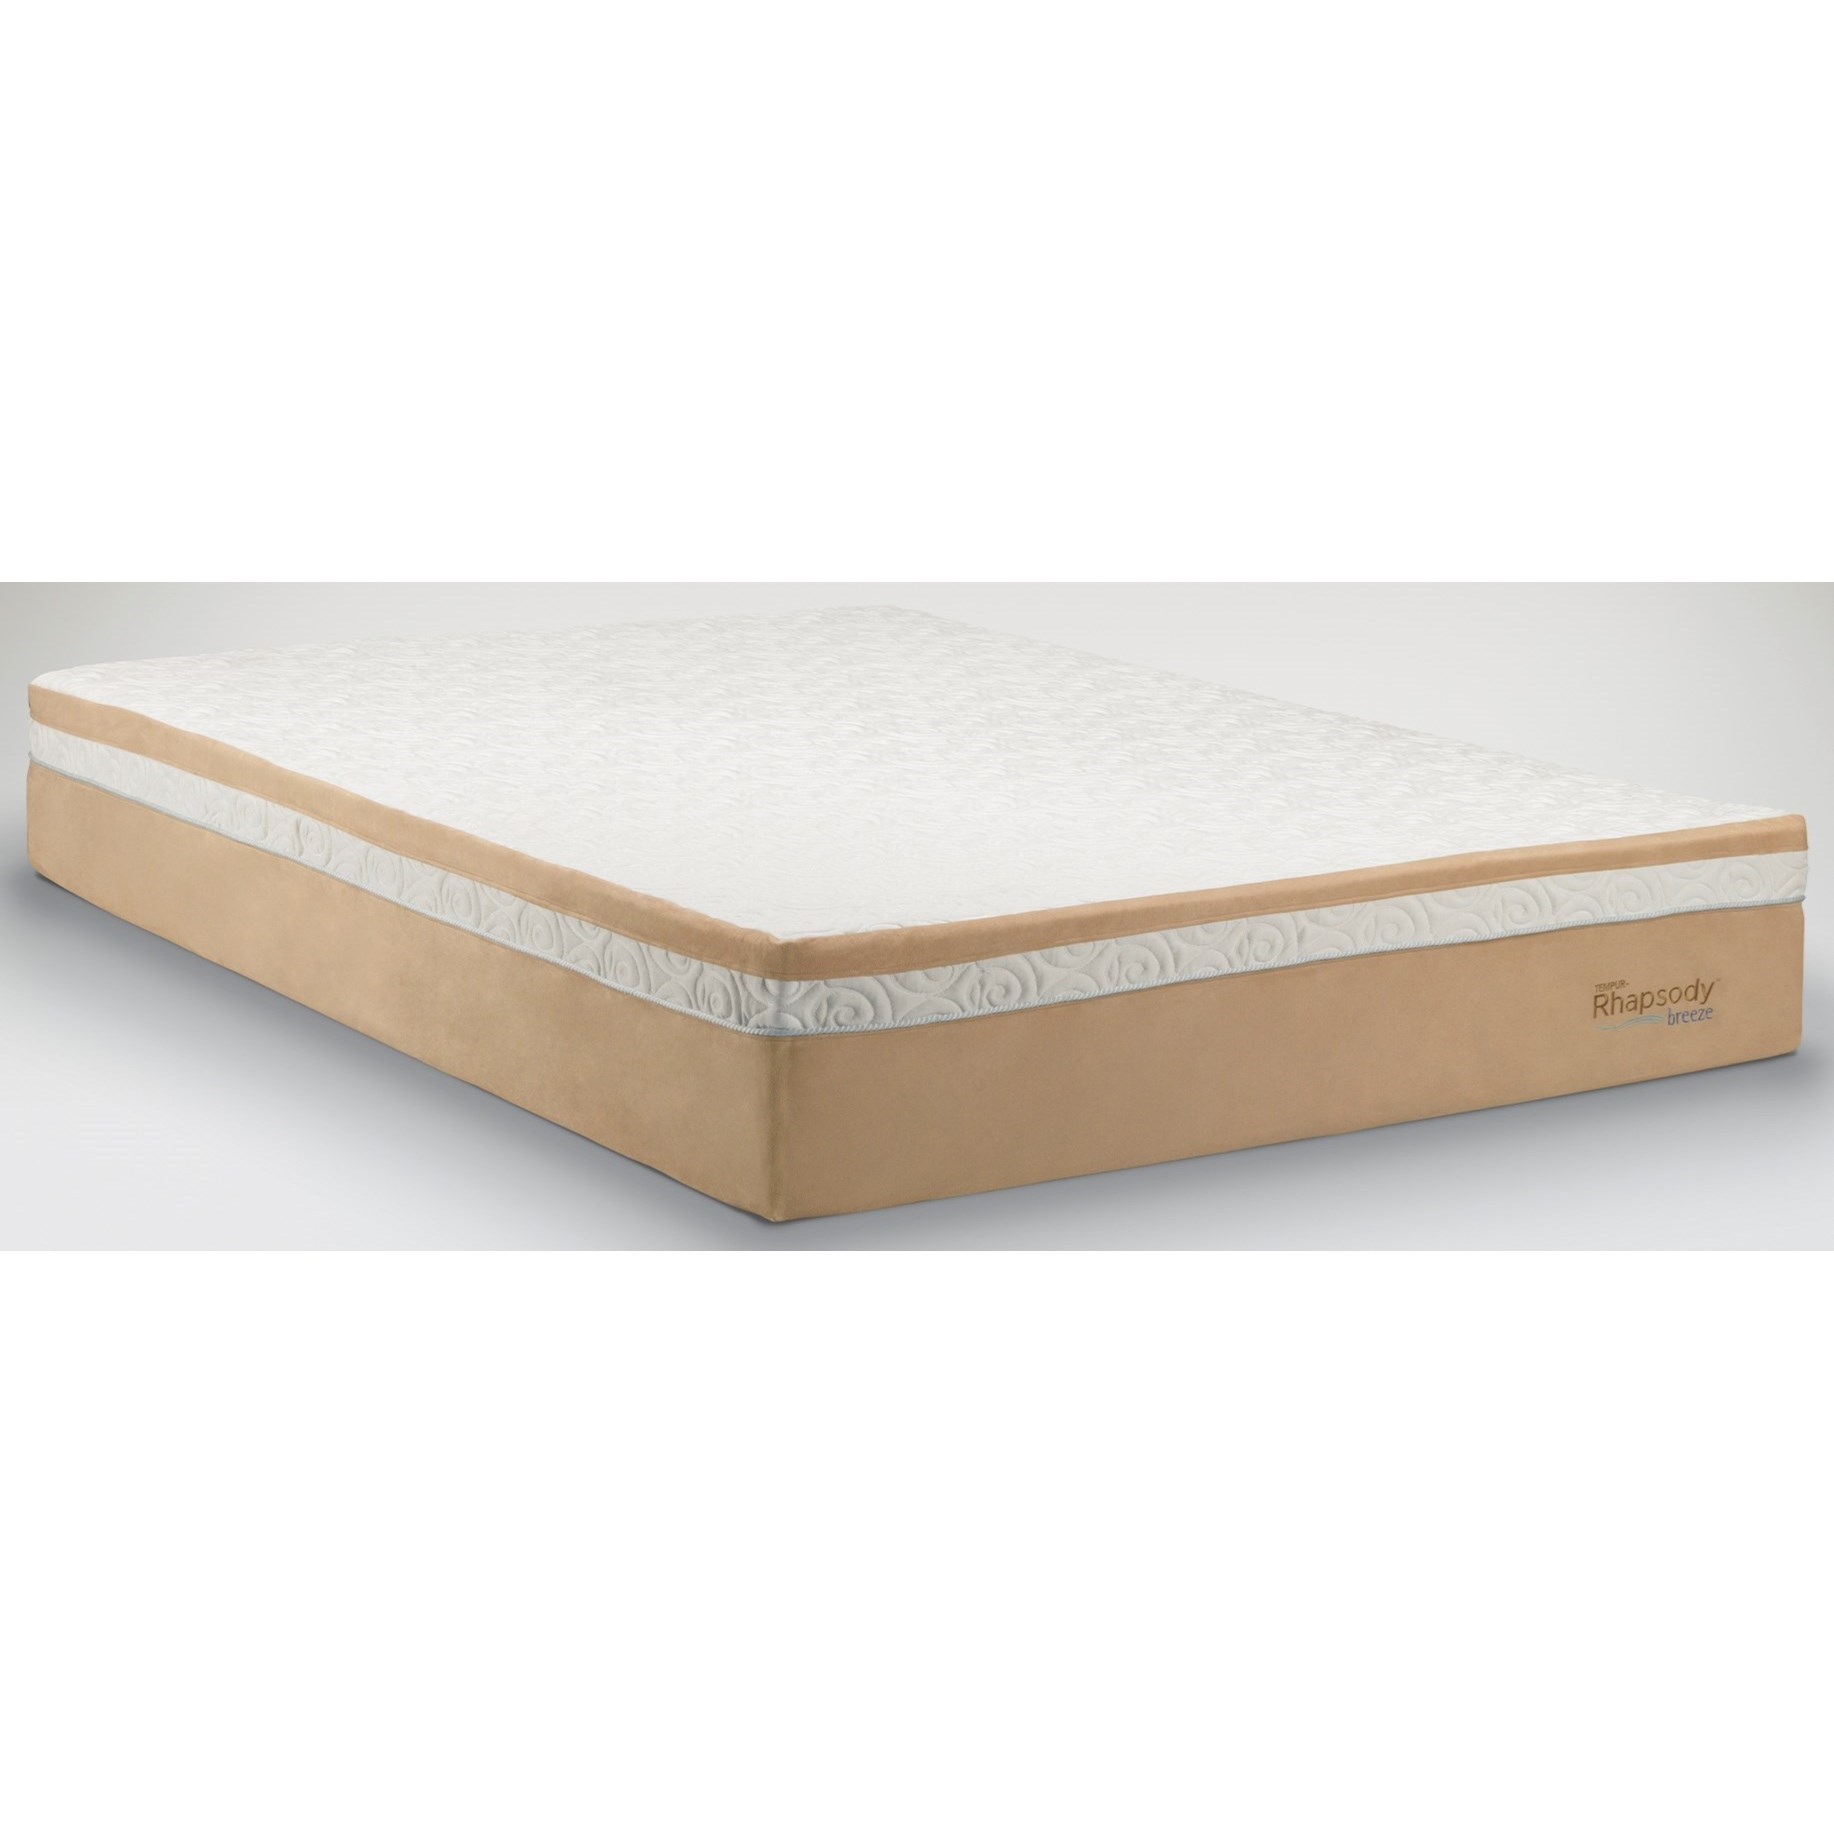 Tempur-Pedic® TEMPUR-Contour™ Rhapsody Breeze King Medium Firm Mattress - Item Number: 10104170